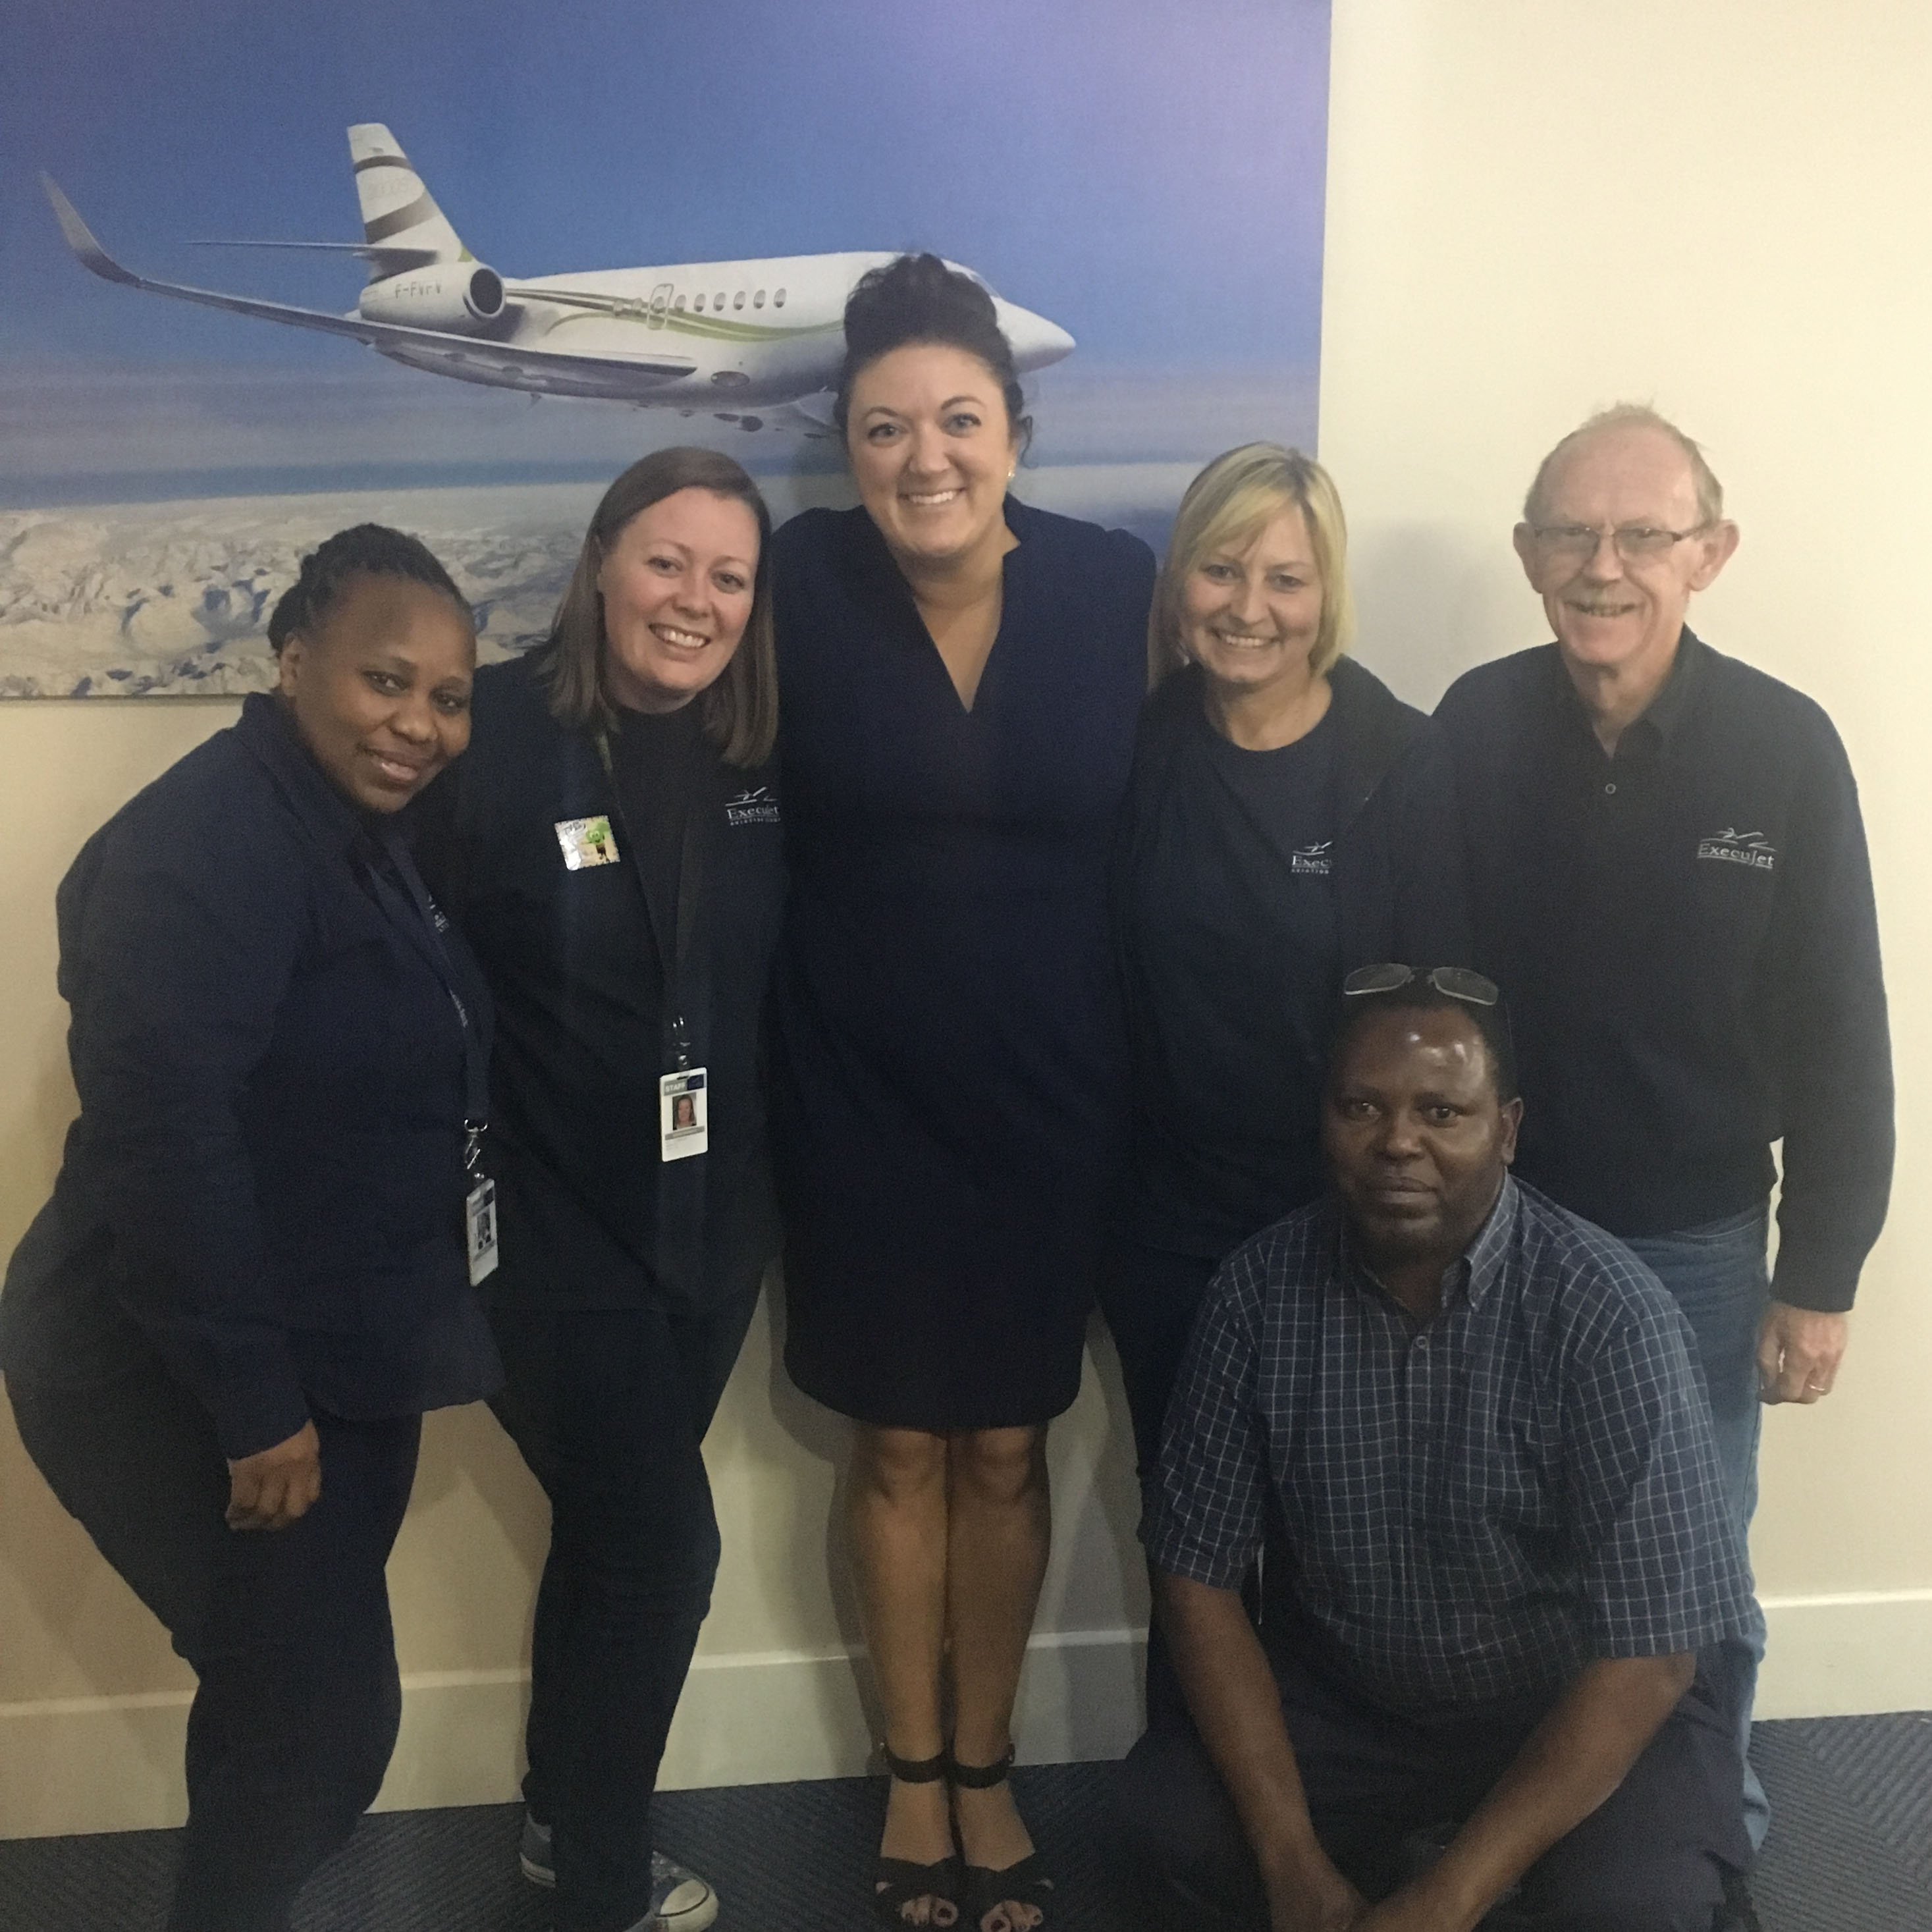 Hannah visiting with Execujet